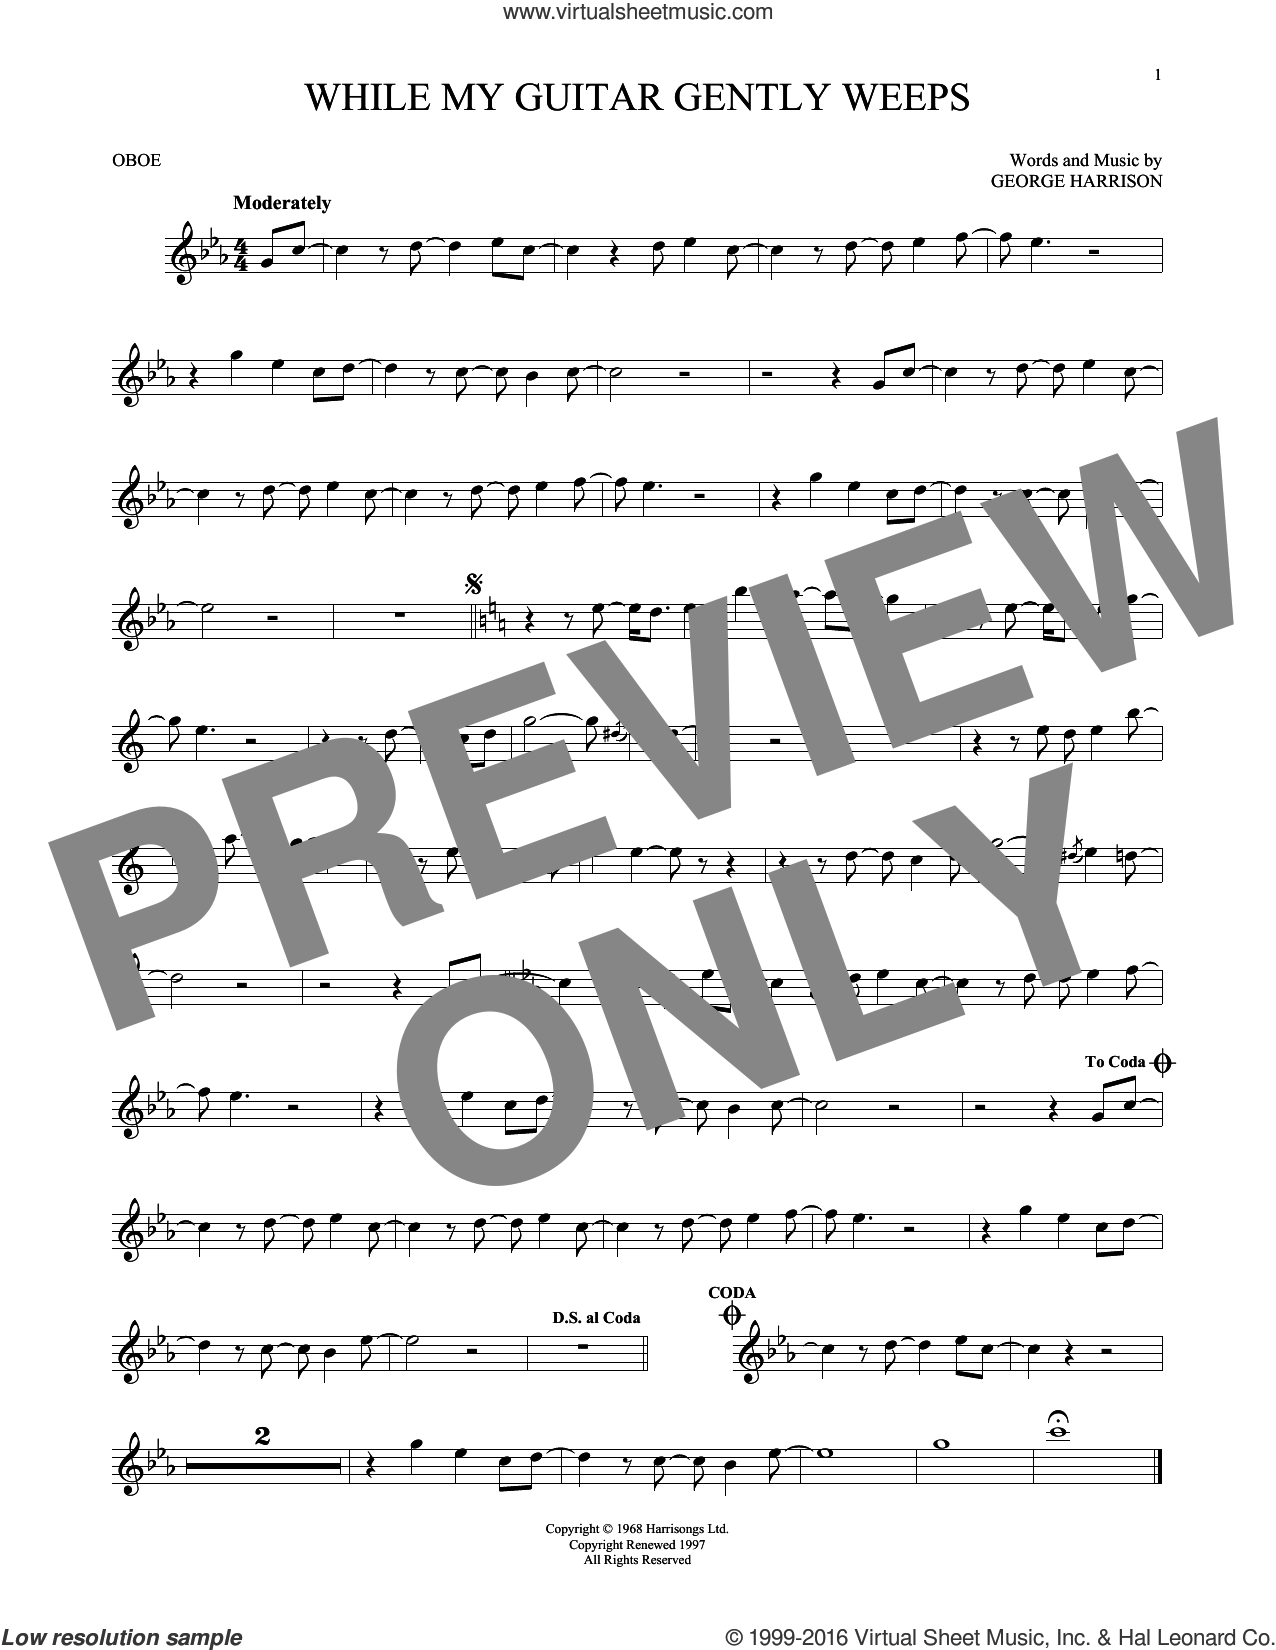 While My Guitar Gently Weeps sheet music for oboe solo by The Beatles, intermediate